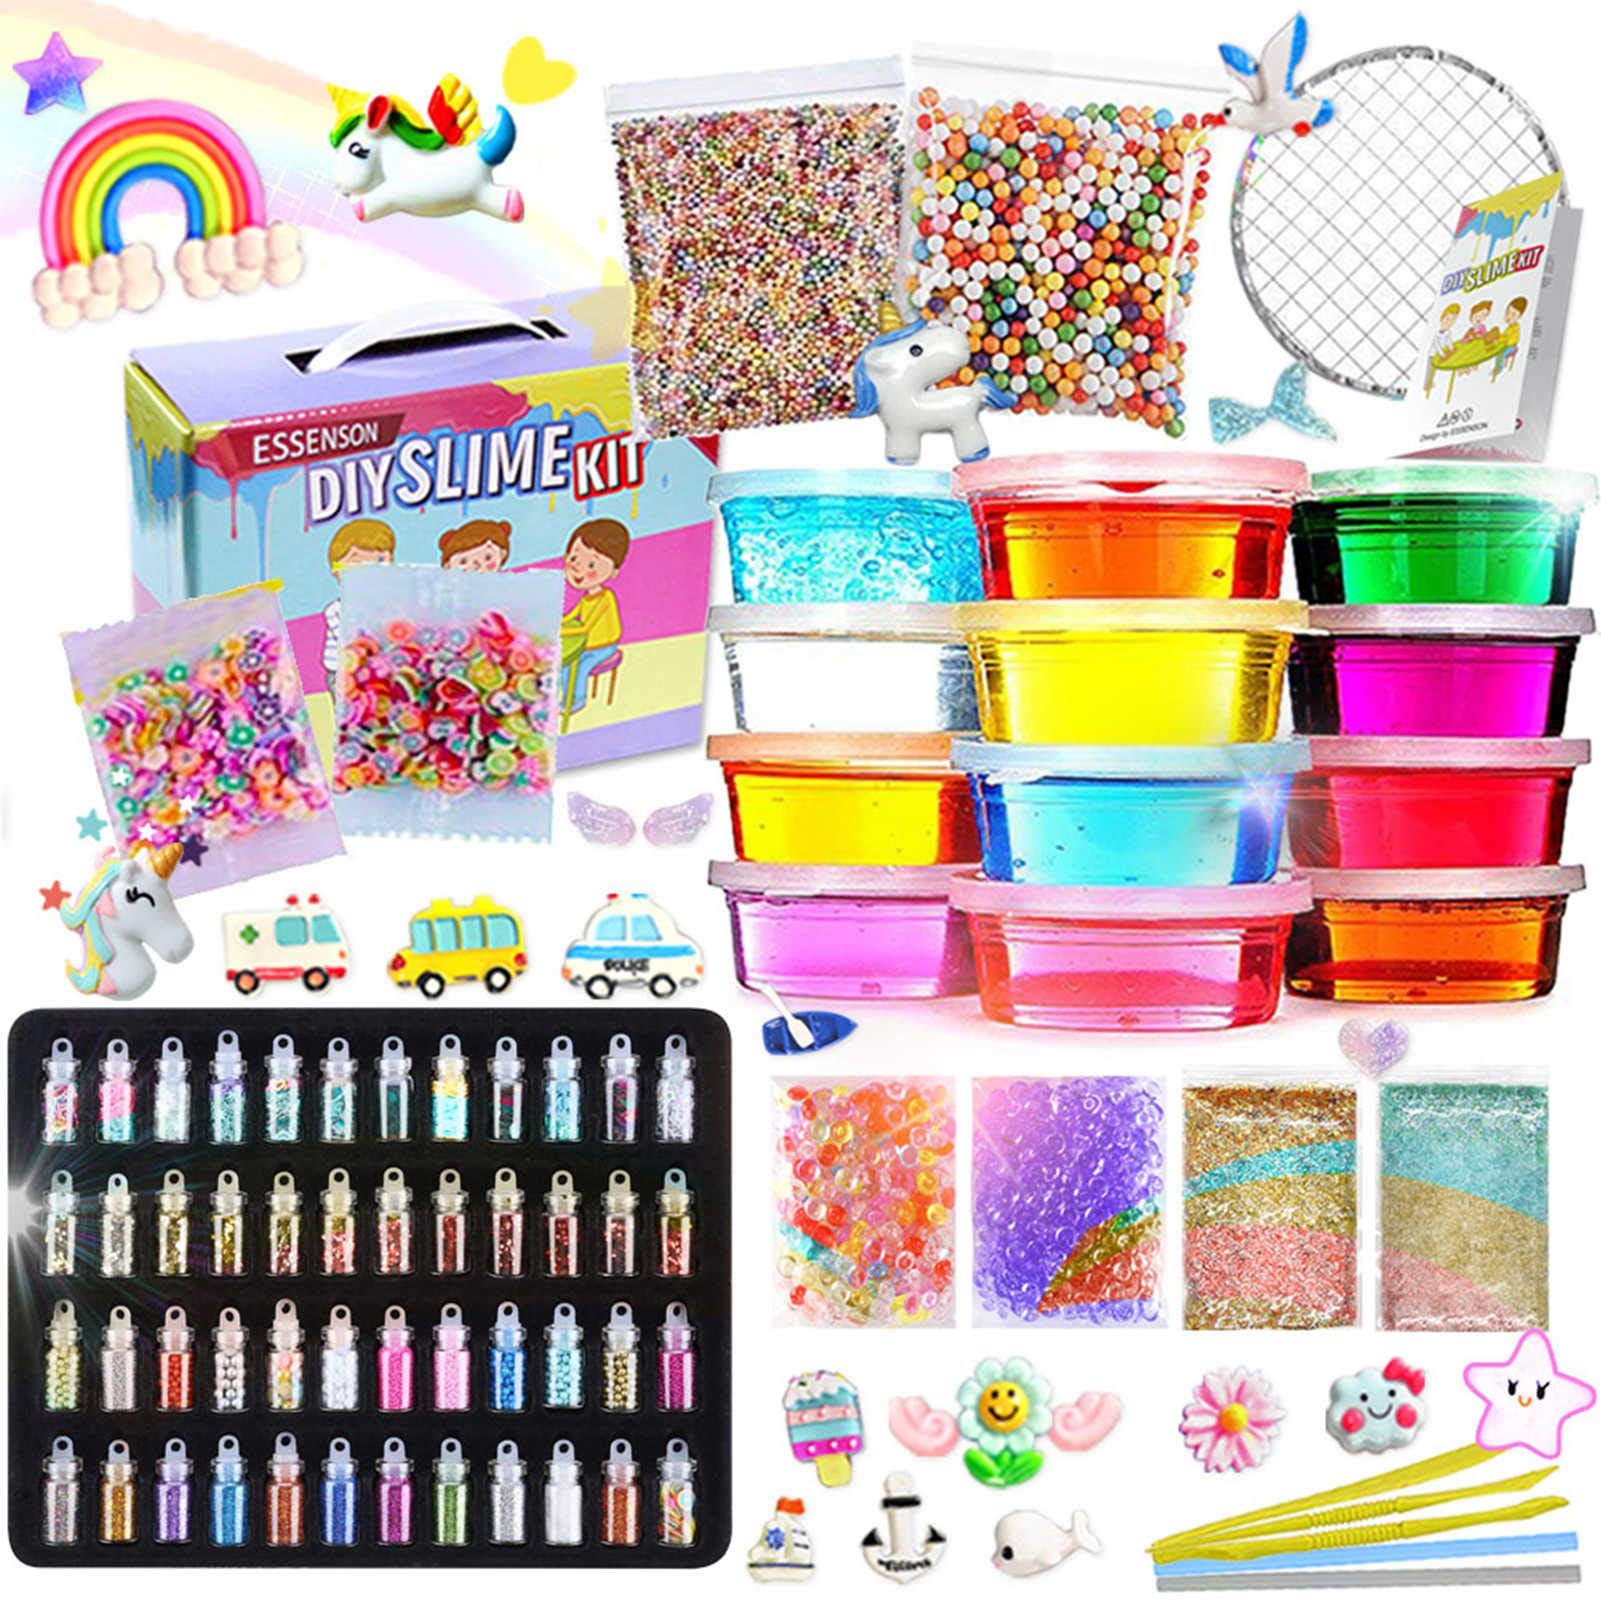 Slime Kit - Slime Supplies Slime Making Kit for Girls Boys, Kids Art Craft, Crystal Clear Slime, Glitter, Slime Charms, Fruit Slices, Fishbowl Beads Girls Toys Gifts for Kids Age 6+ Year Old